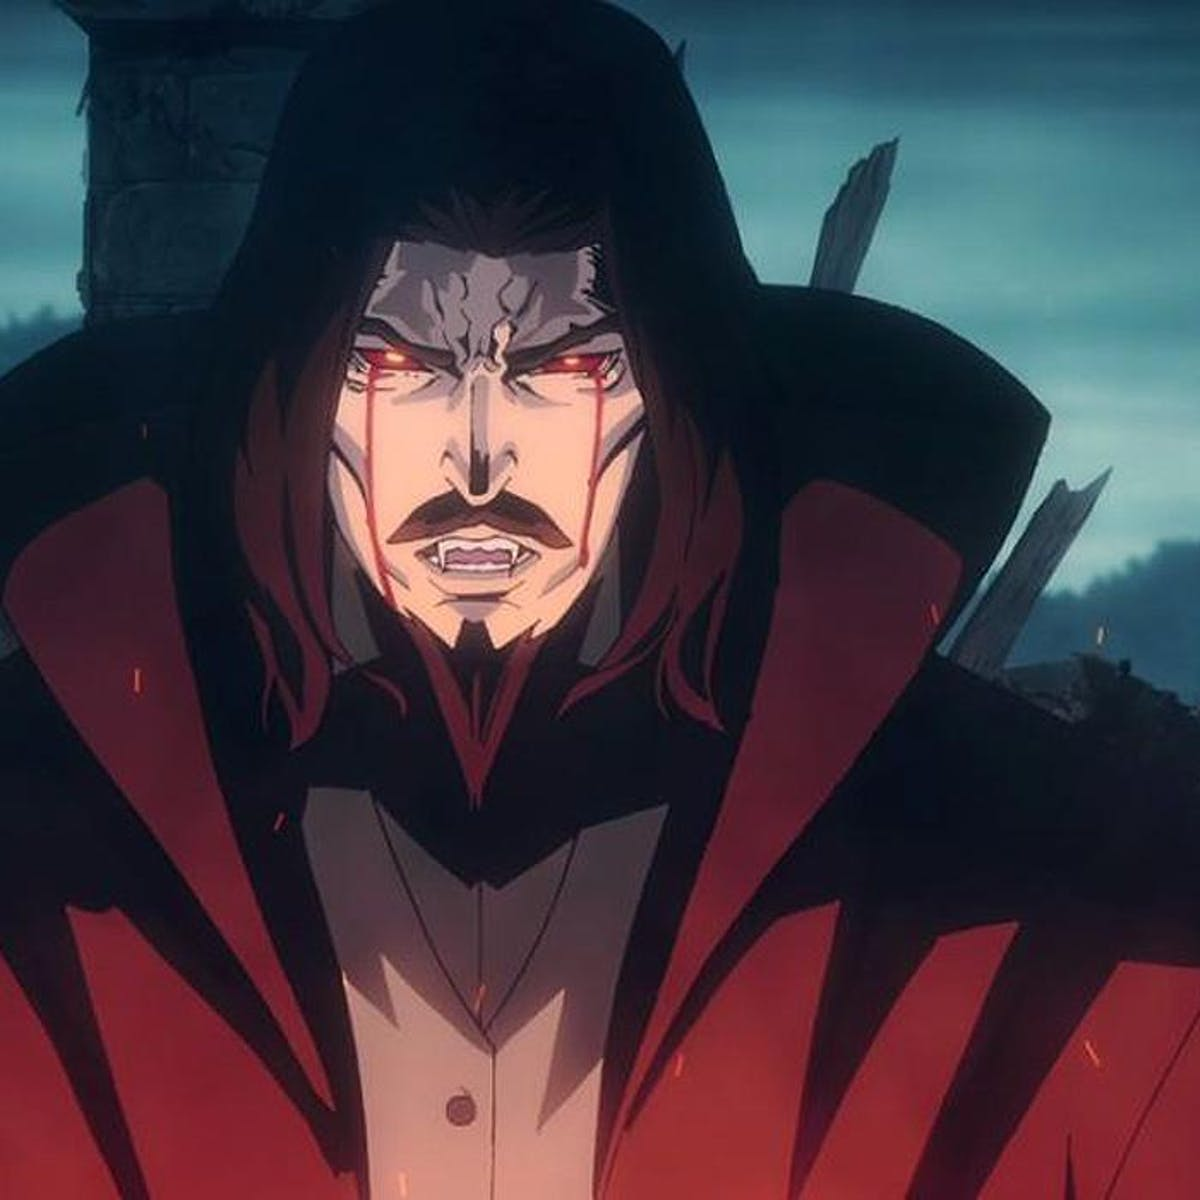 The star of Castlevania, Vlad Dracula Tepes cries very hard over his wife